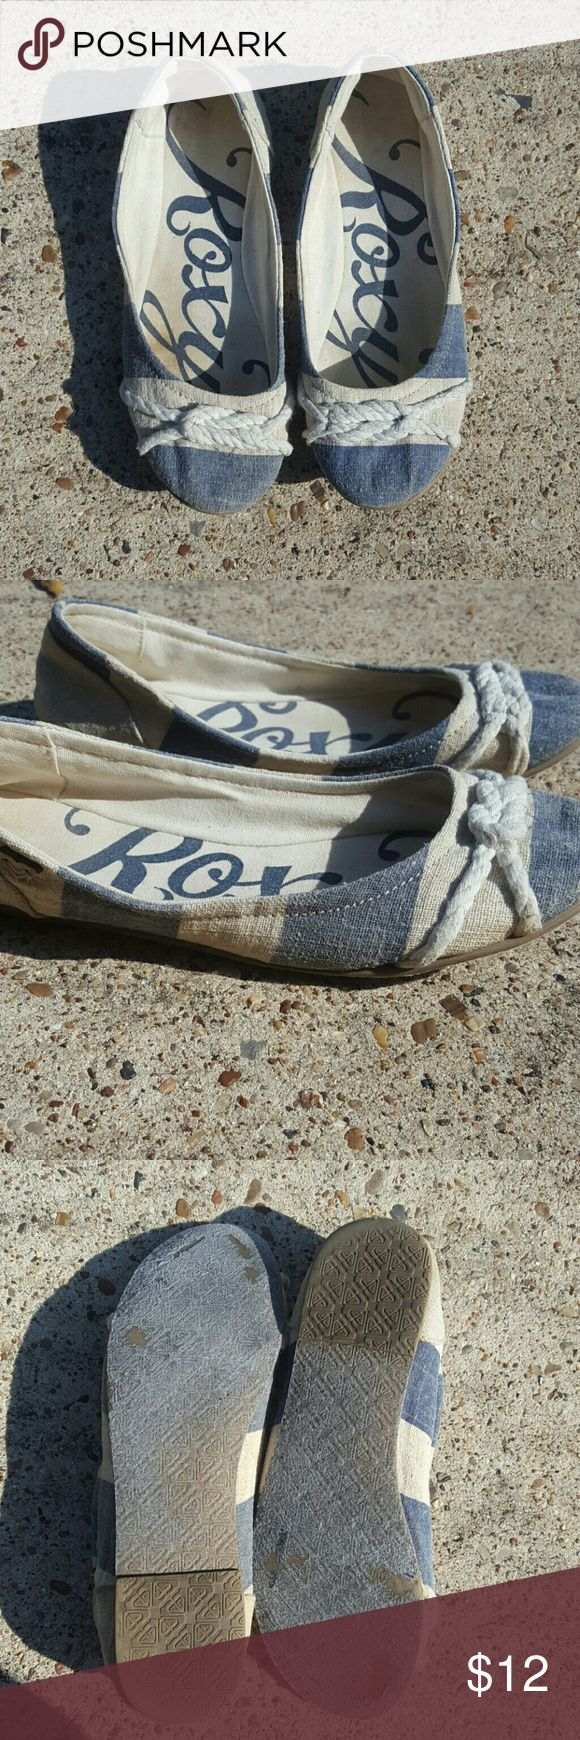 Roxy Nautical Flats Roxy ballet flats, too cute! Does have wear as shown, lots of life left! Bundle and Save! Roxy Shoes Flats & Loafers